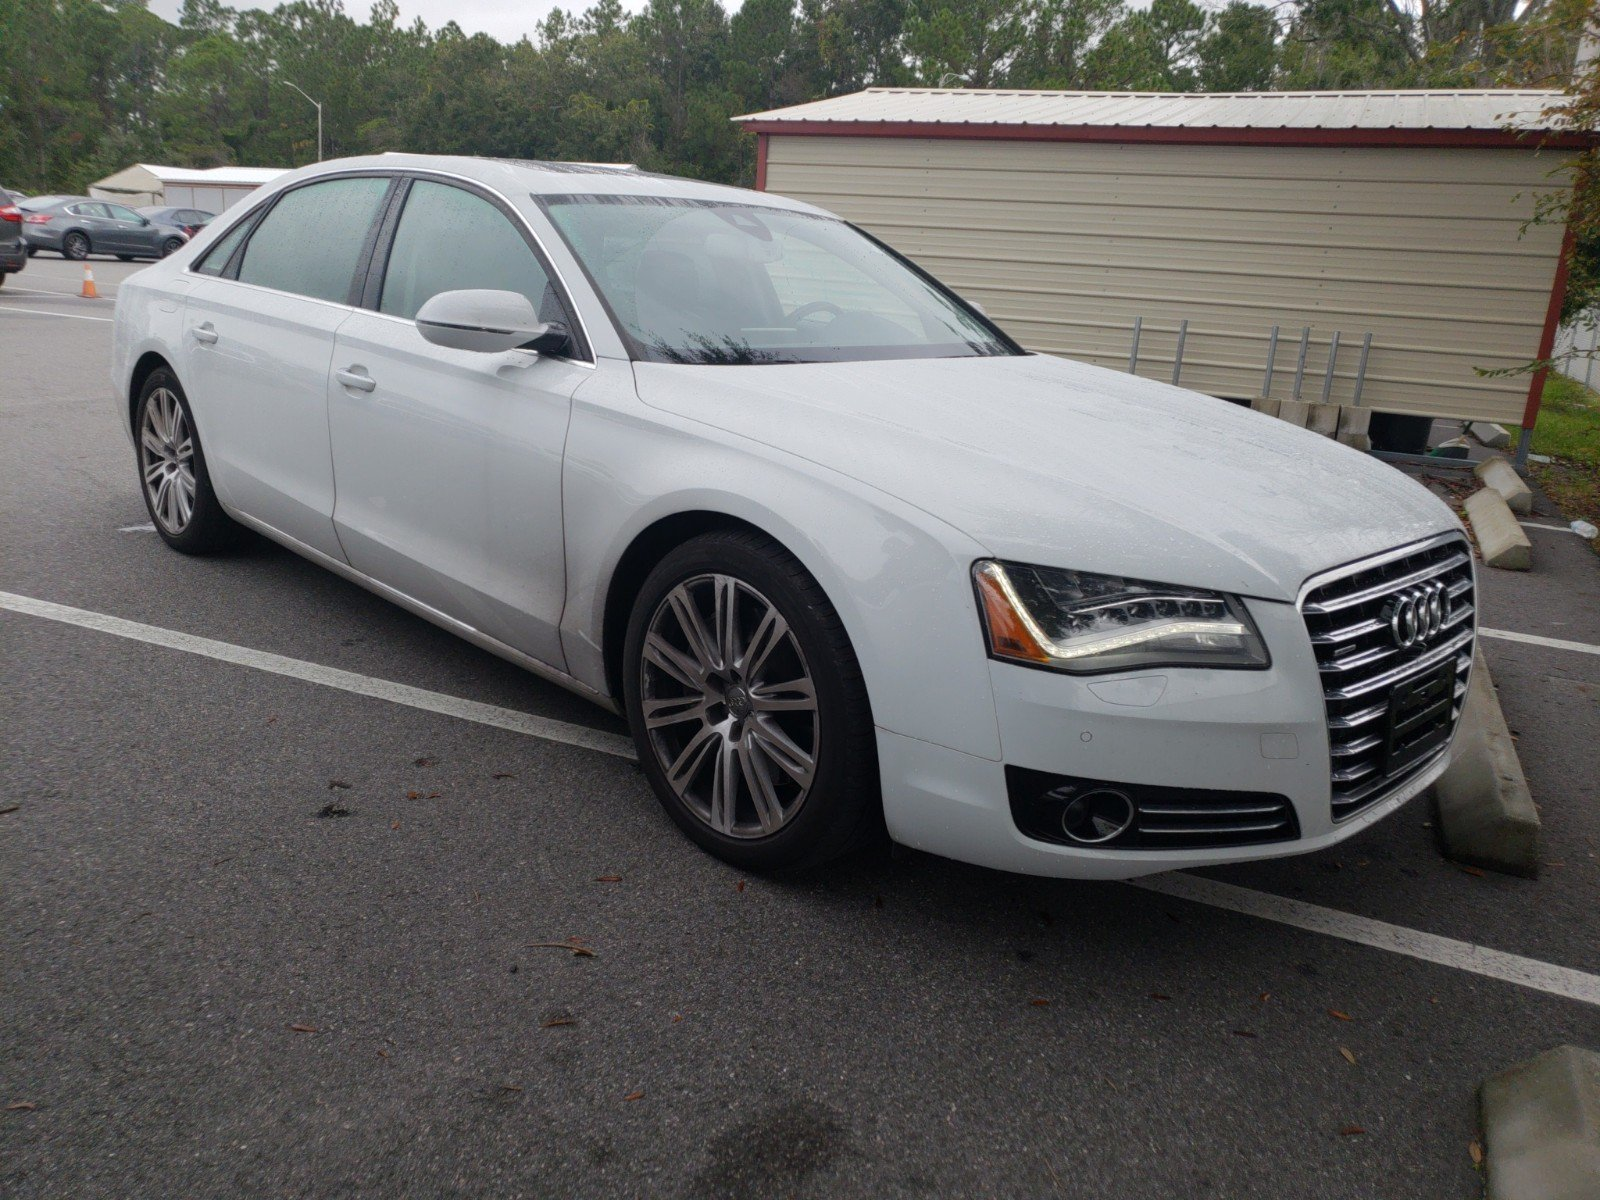 Pre Owned 2014 Audi A8 L 4 0T 4dr Car in Jacksonville A